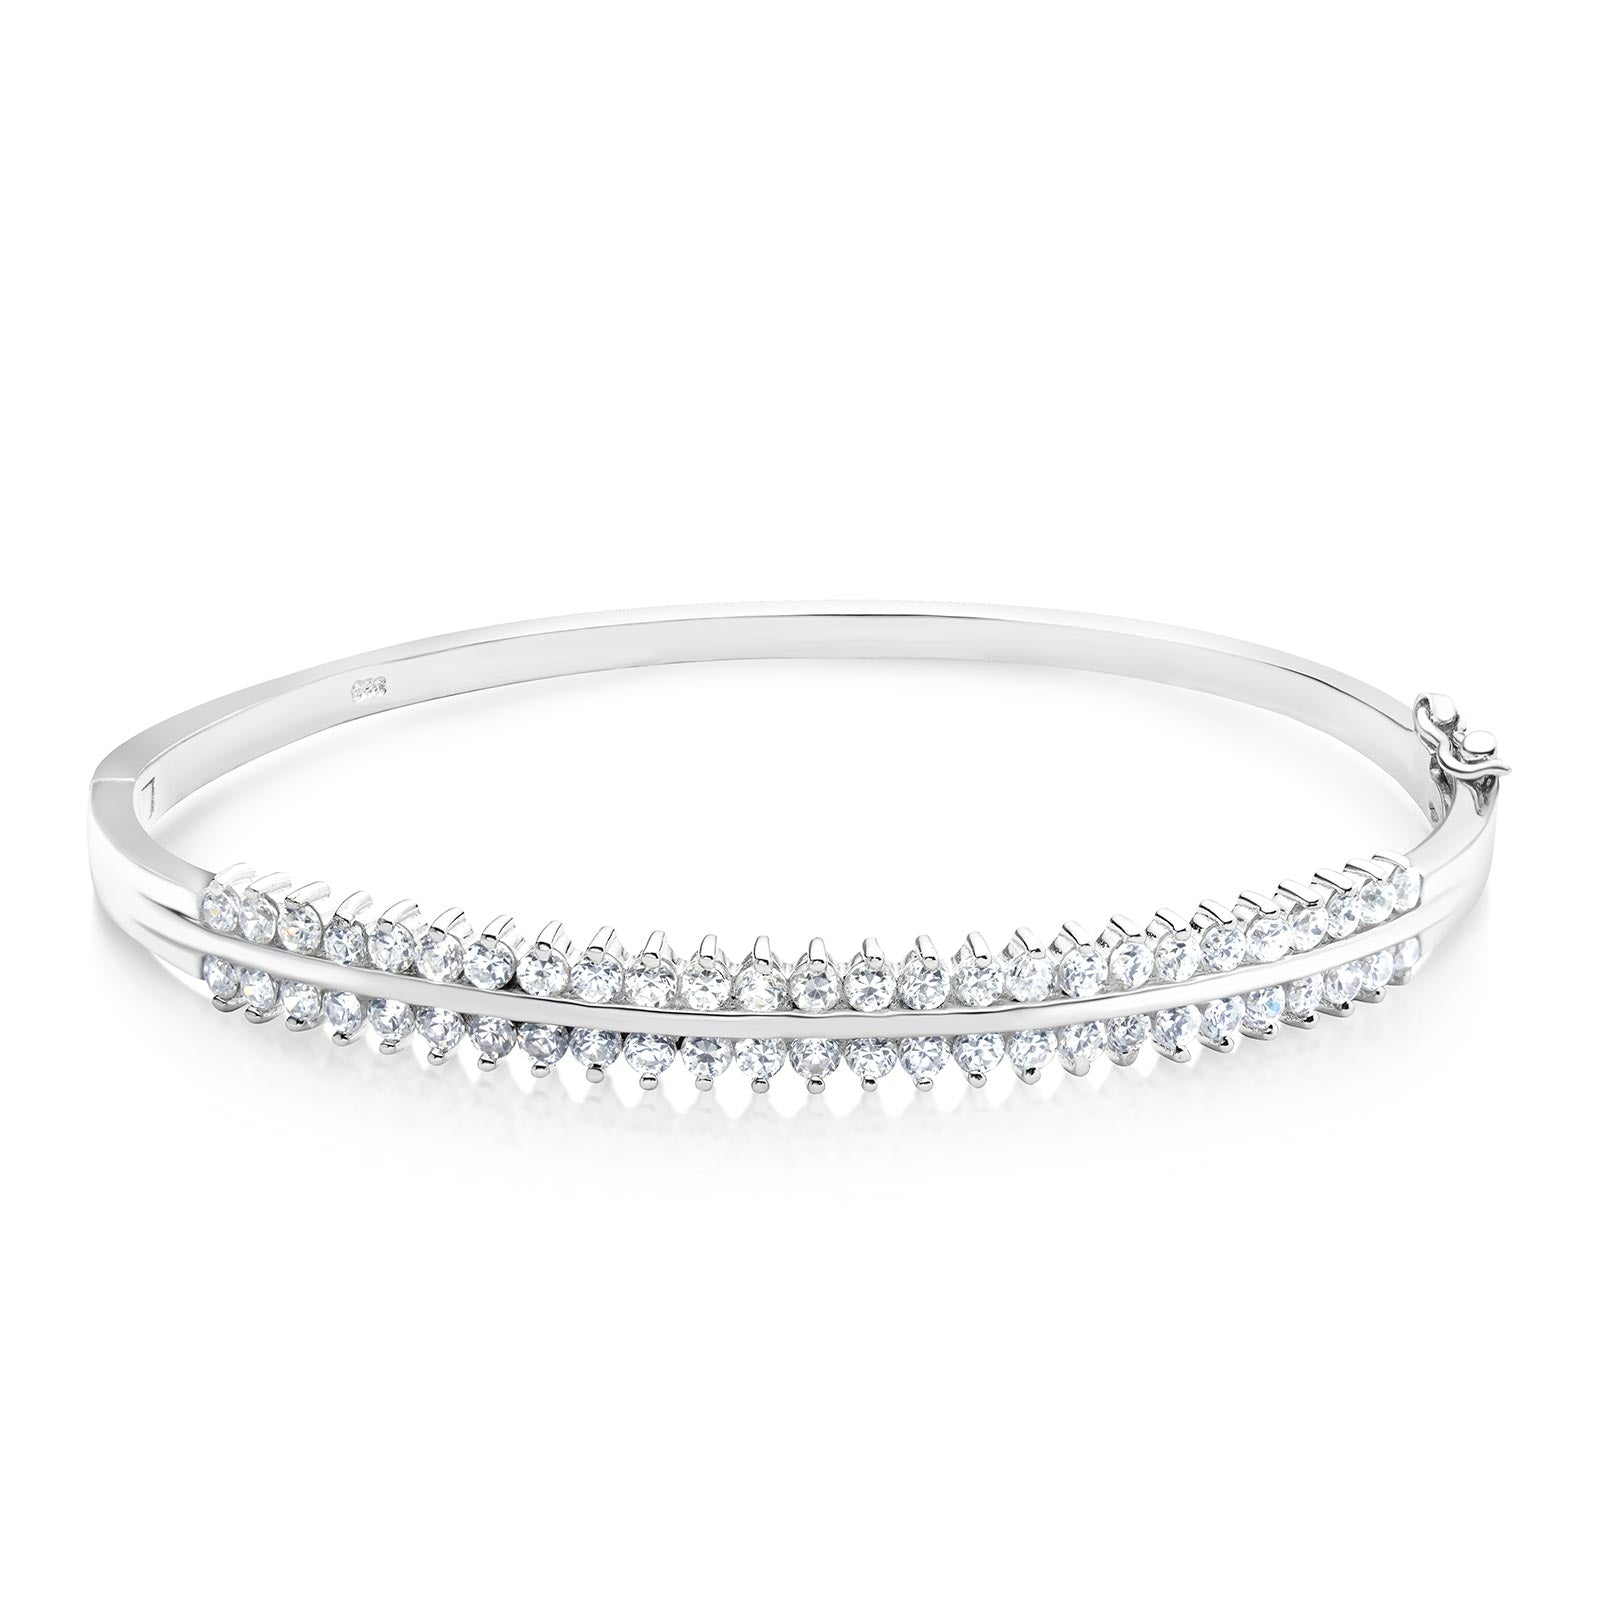 MD-SLBG001 Silver 2 Row Bangle Bracelet